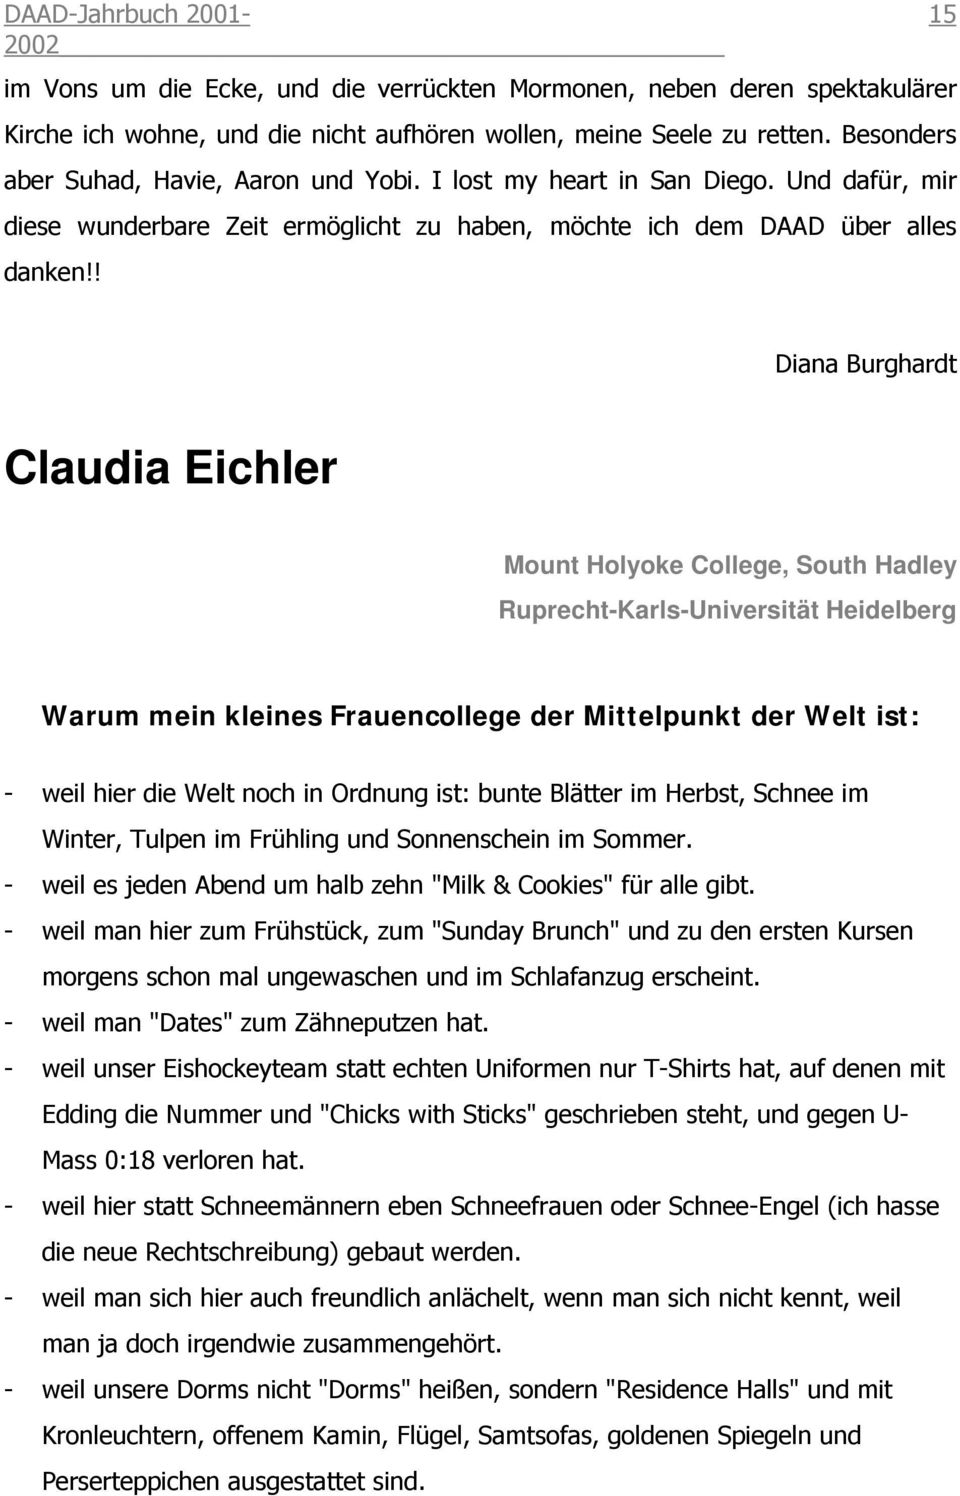 ! 15 Diana Burghardt Claudia Eichler Mount Holyoke College, South Hadley Ruprecht-Karls-Universität Heidelberg Warum mein kleines Frauencollege der Mittelpunkt der Welt ist: - weil hier die Welt noch